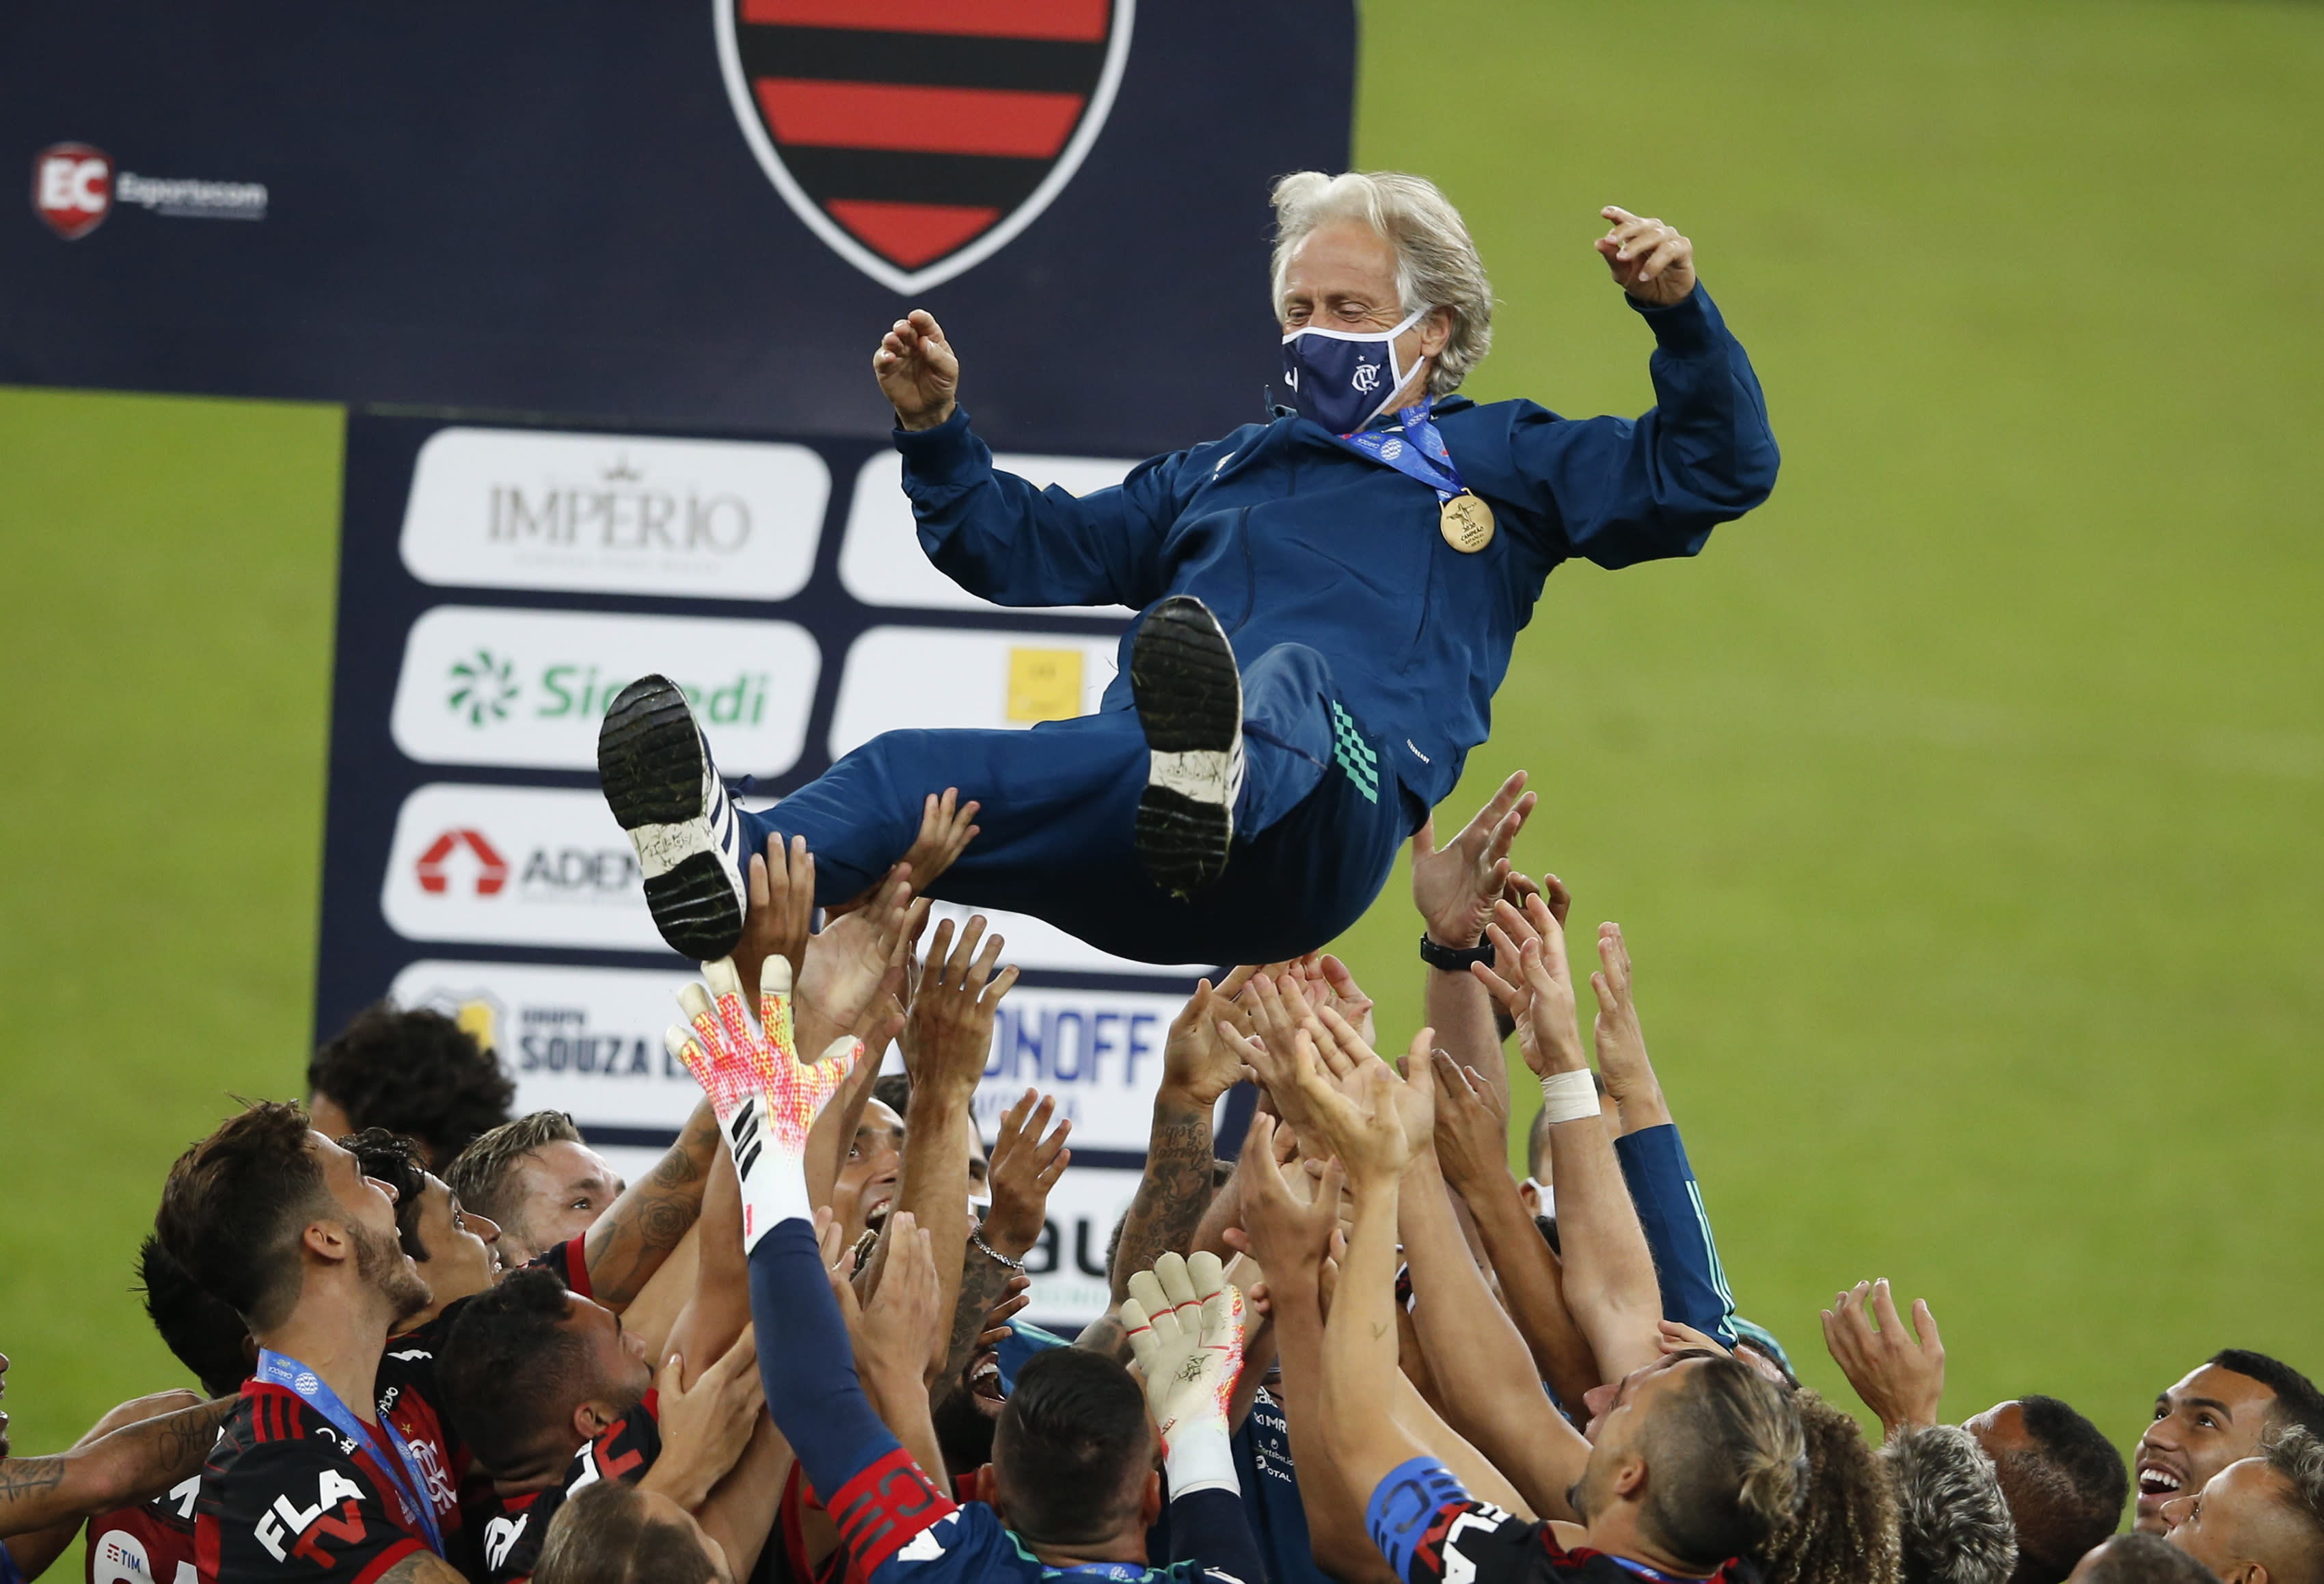 Flamengo's coach Jorge Jesus is thrown in the air by his players after winning the Rio de Janeiro state championship final soccer match at the Maracana stadium, Rio de Janeiro, Brazil, Wednesday, July 15, 2020. Flamengo won 1-0. (AP Photo/Leo Correa)